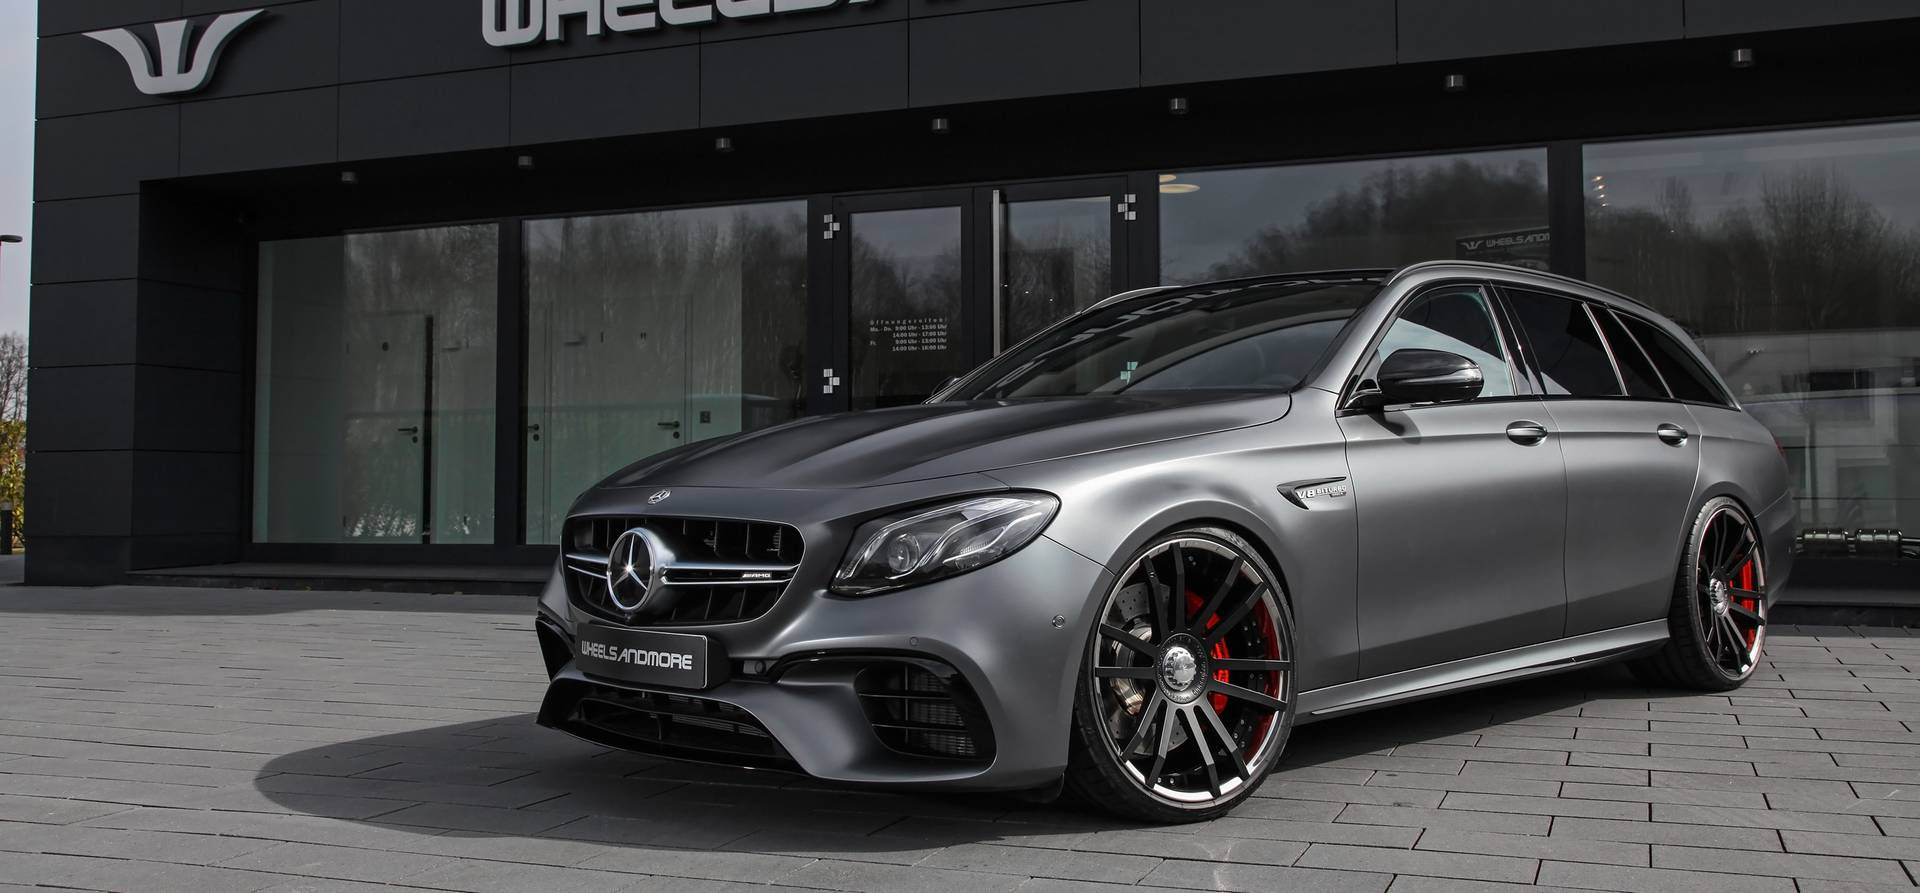 712hp for the mercedes amg e63 s estate by wheelsandmore. Black Bedroom Furniture Sets. Home Design Ideas